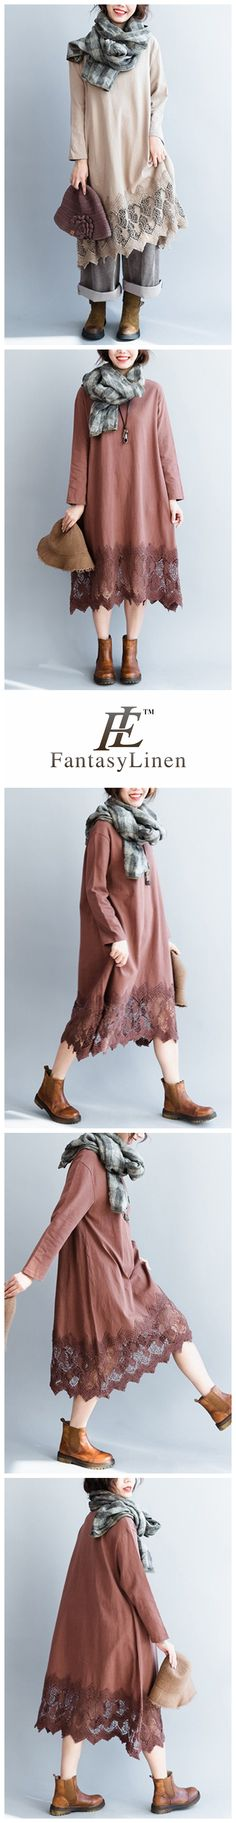 Women's Elegant Lace Loose Cotton Dress With Long Sleeve Q7114